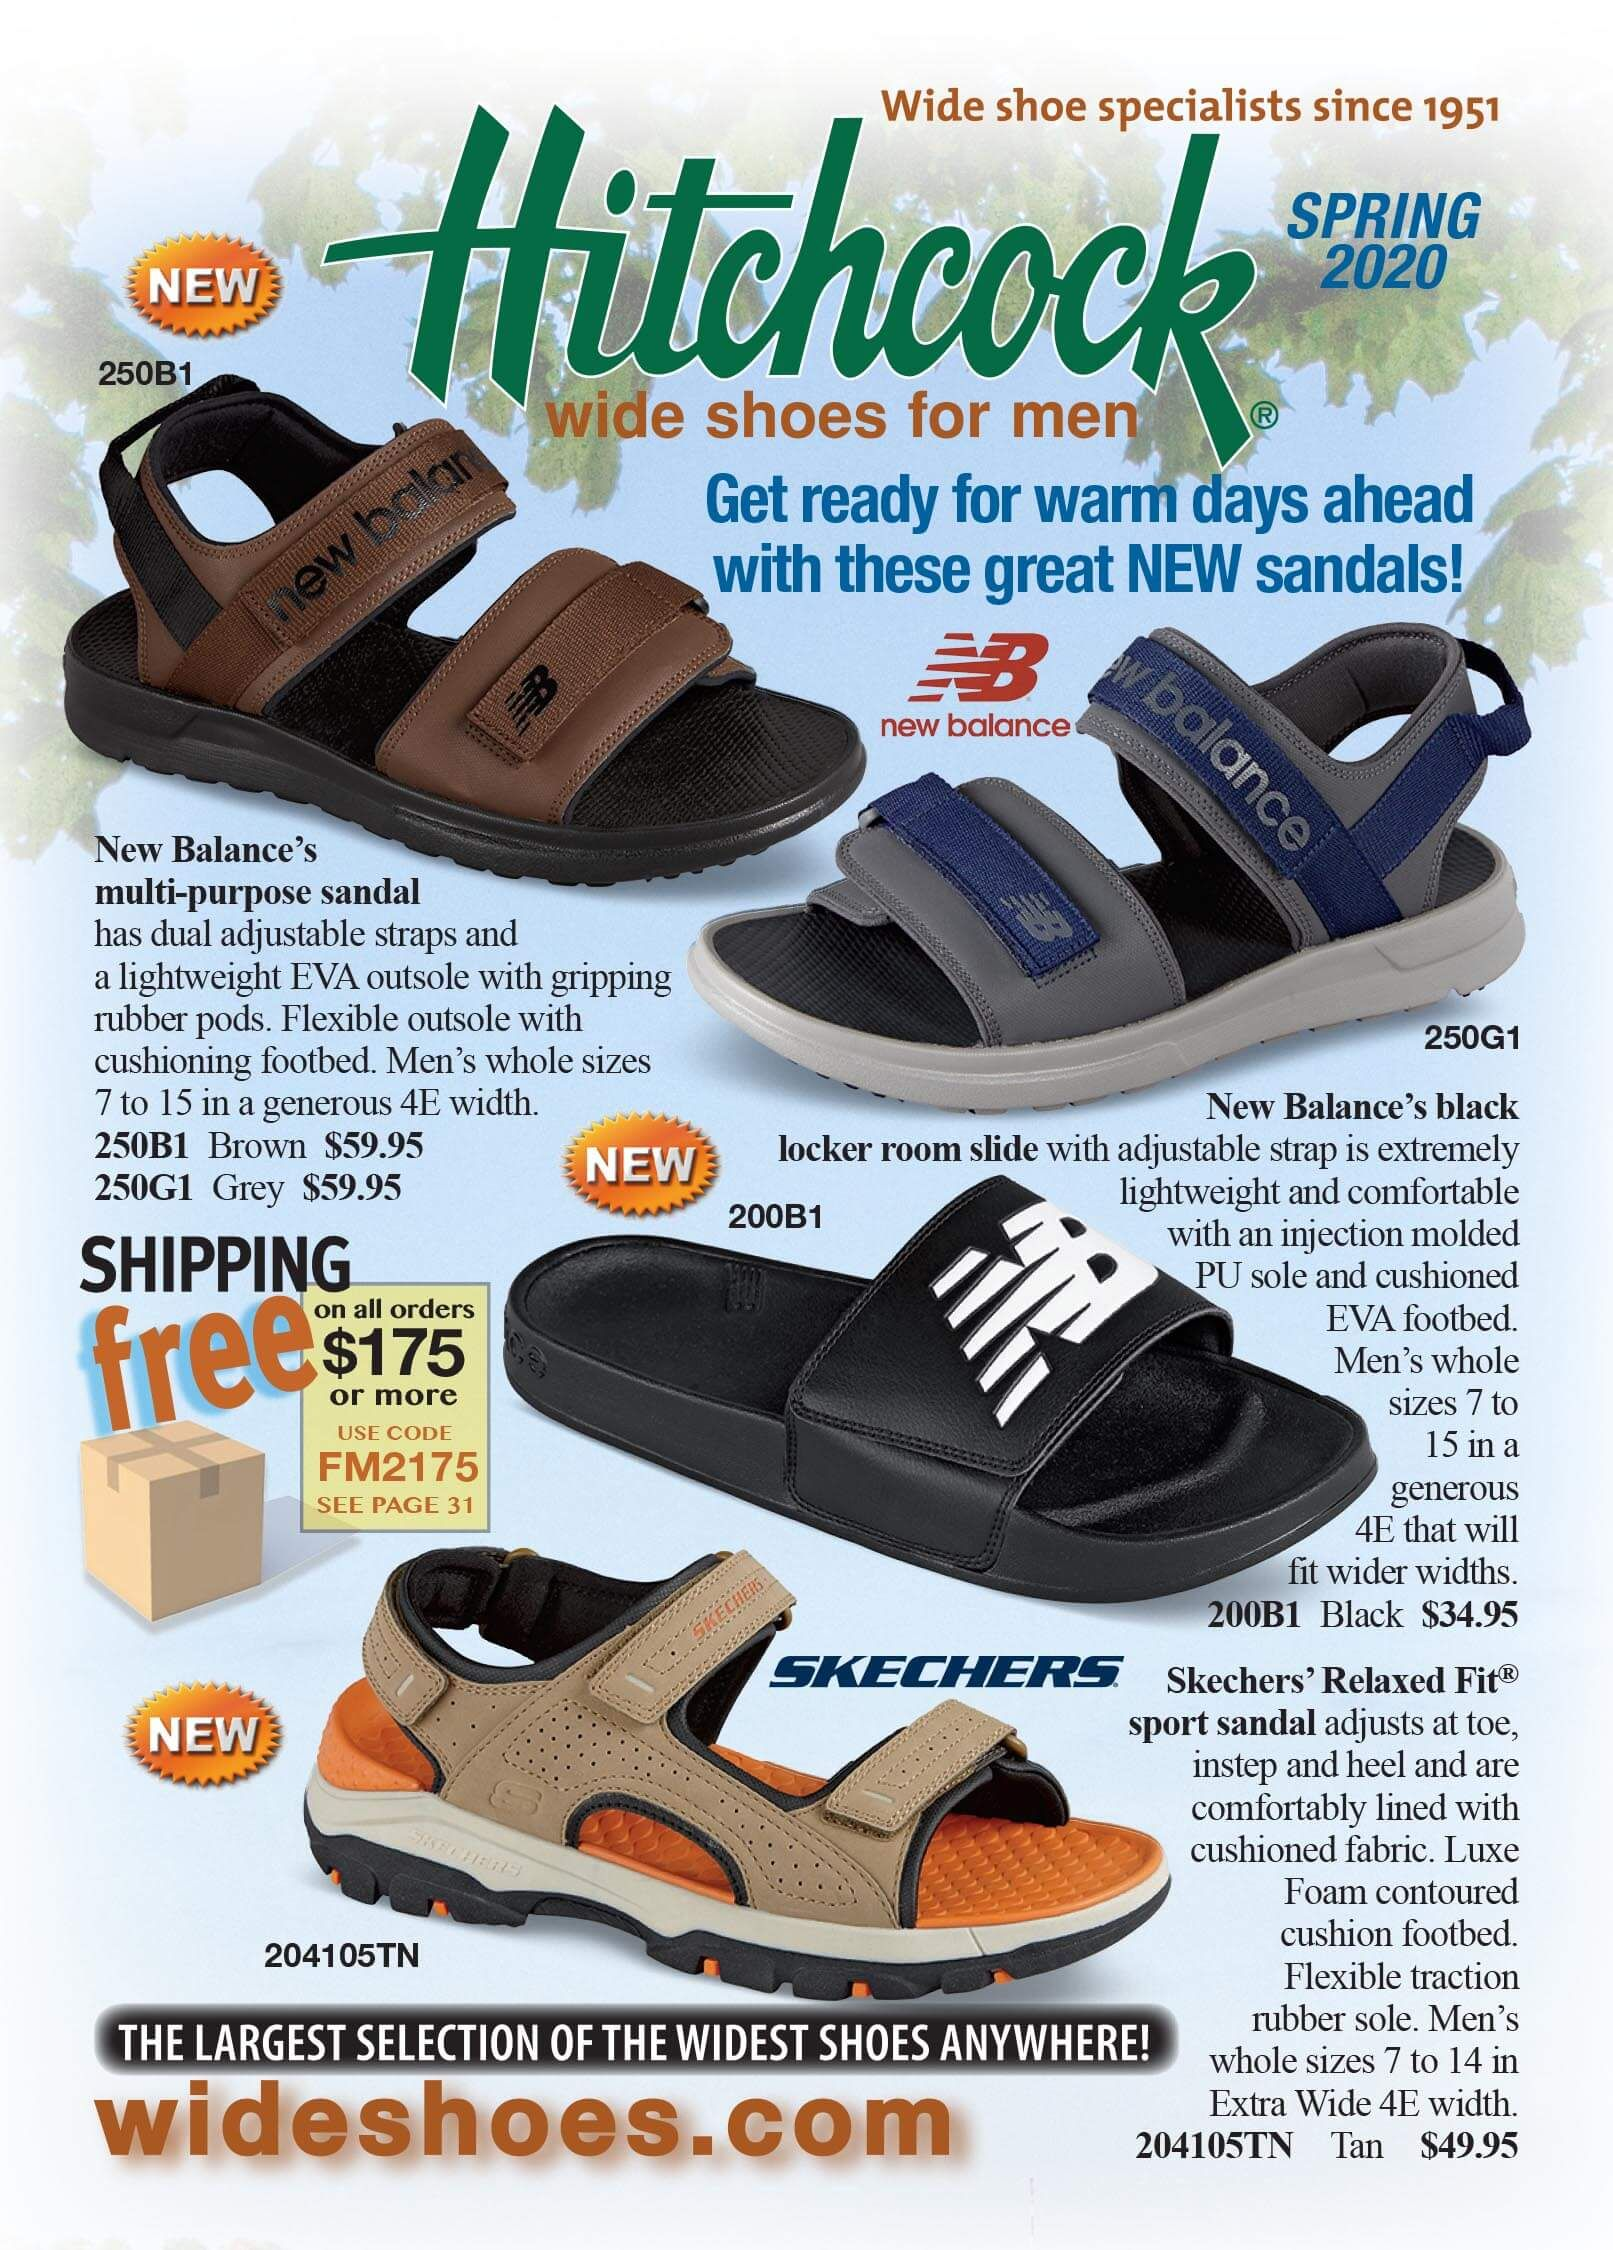 Our Spring 2020 Flyer Is On Its Way Find A Large Selection Of Spring And Summer Styles Just In Time For Sprin In 2020 Wide Shoes For Men Mens Wide Sandals Wide Shoes